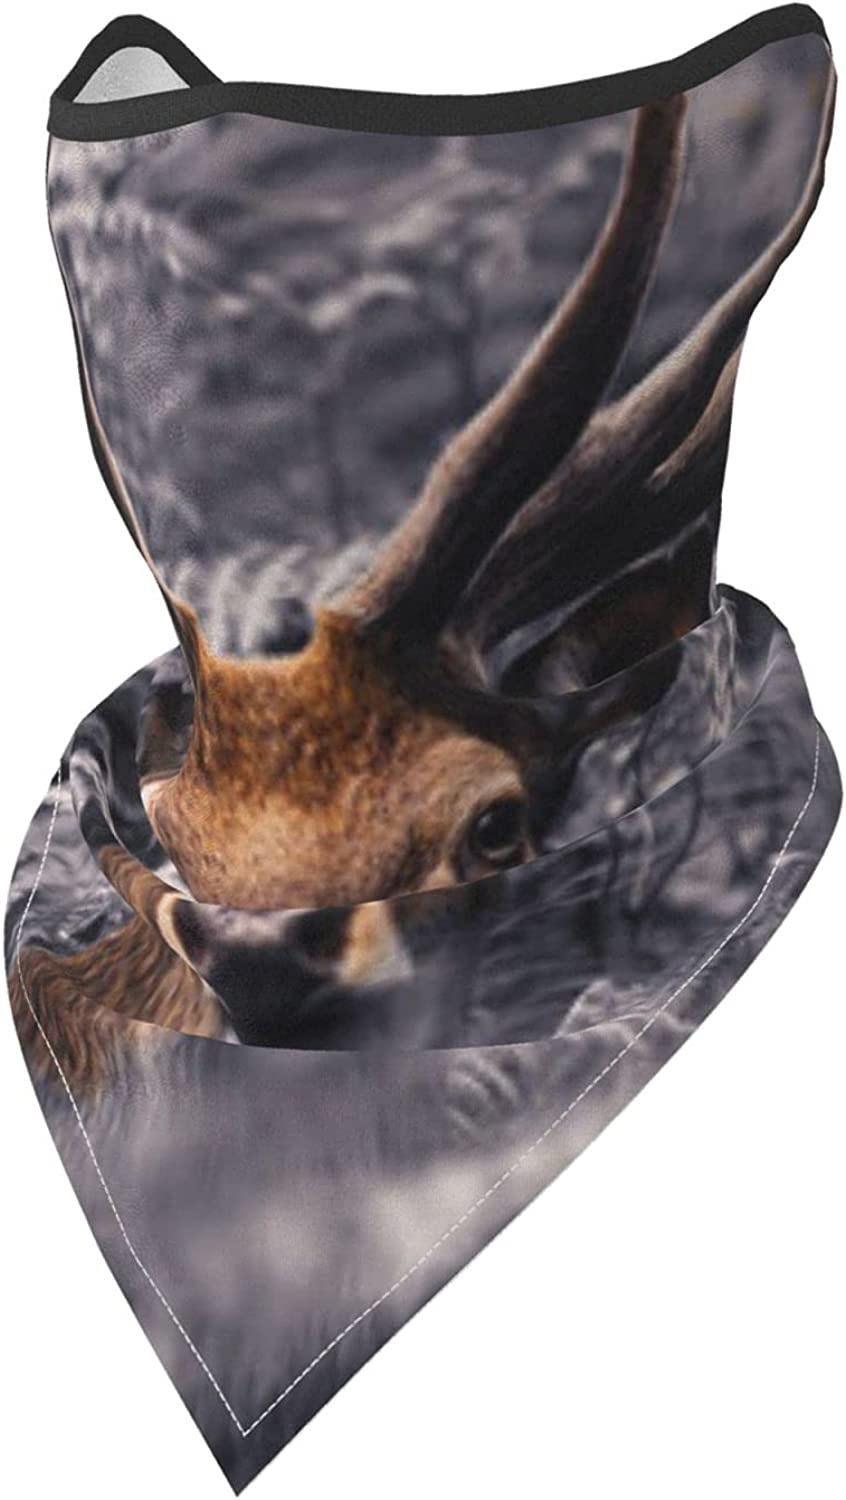 Deer in The Bushes Breathable Bandana Face Mask Neck Gaiter Windproof Sports Mask Scarf Headwear for Men Women Outdoor Hiking Cycling Running Motorcycling